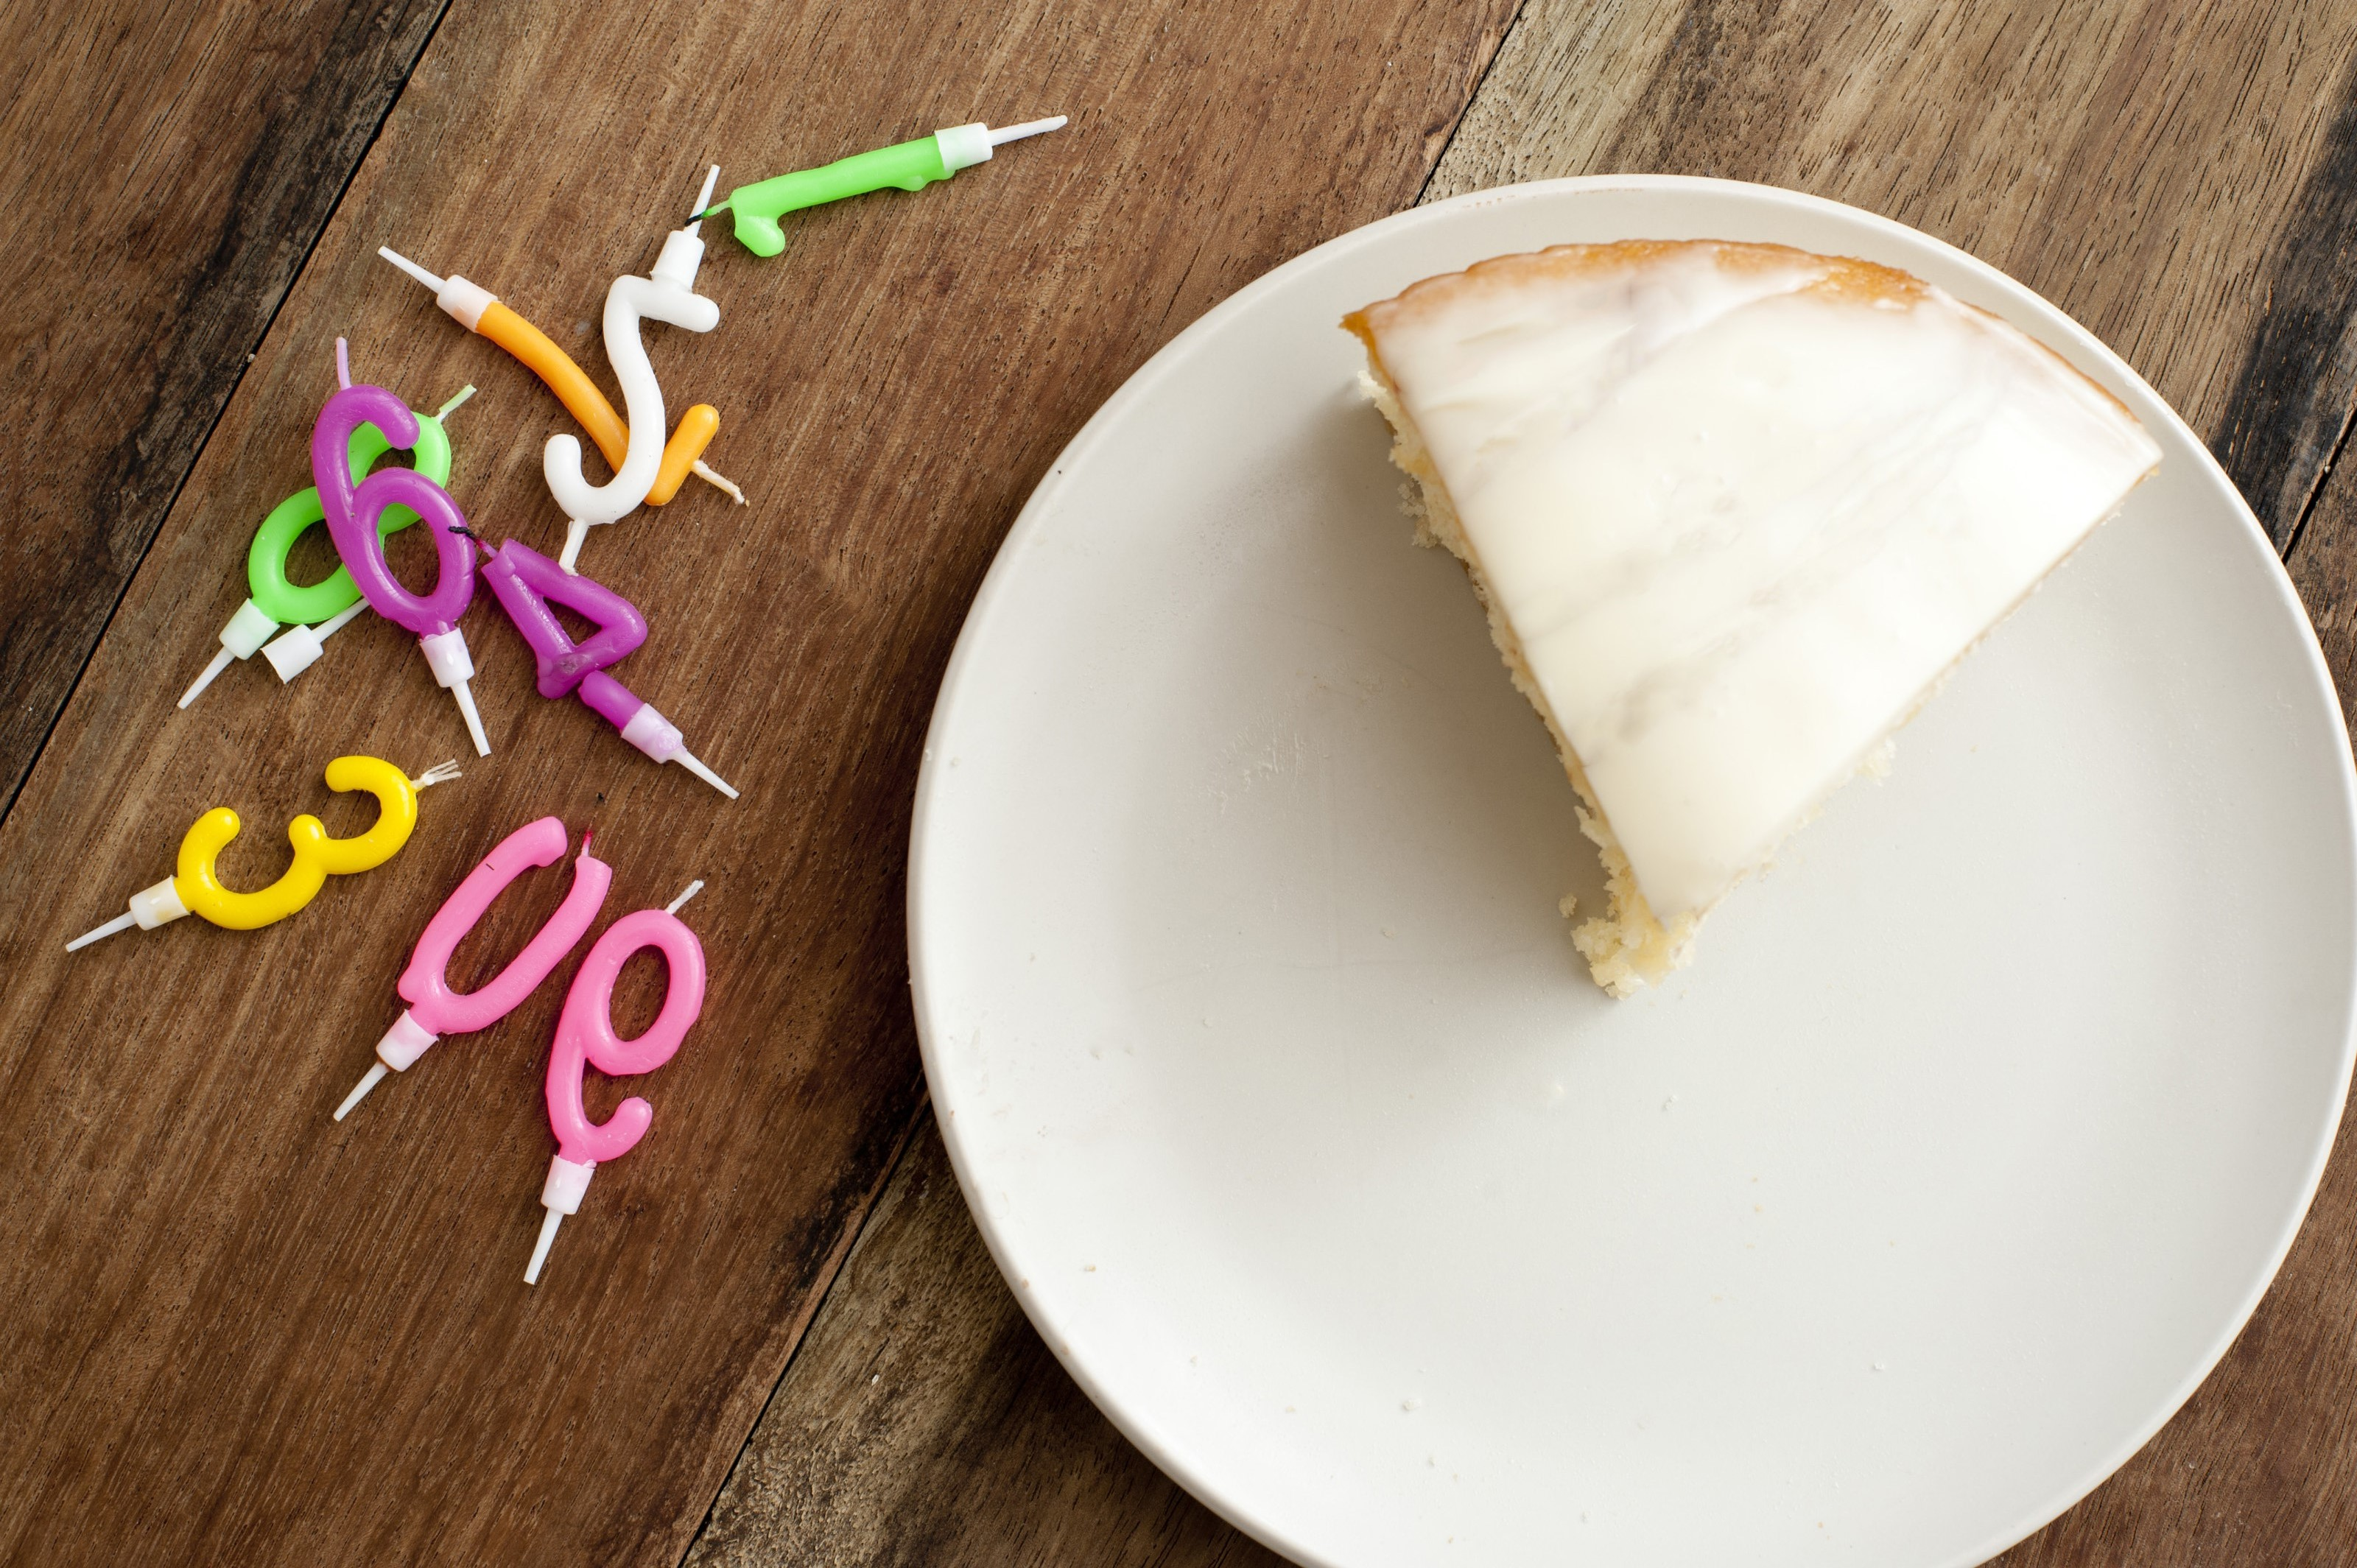 Free Image Of Slice Birthday Cake On Plate With Candles